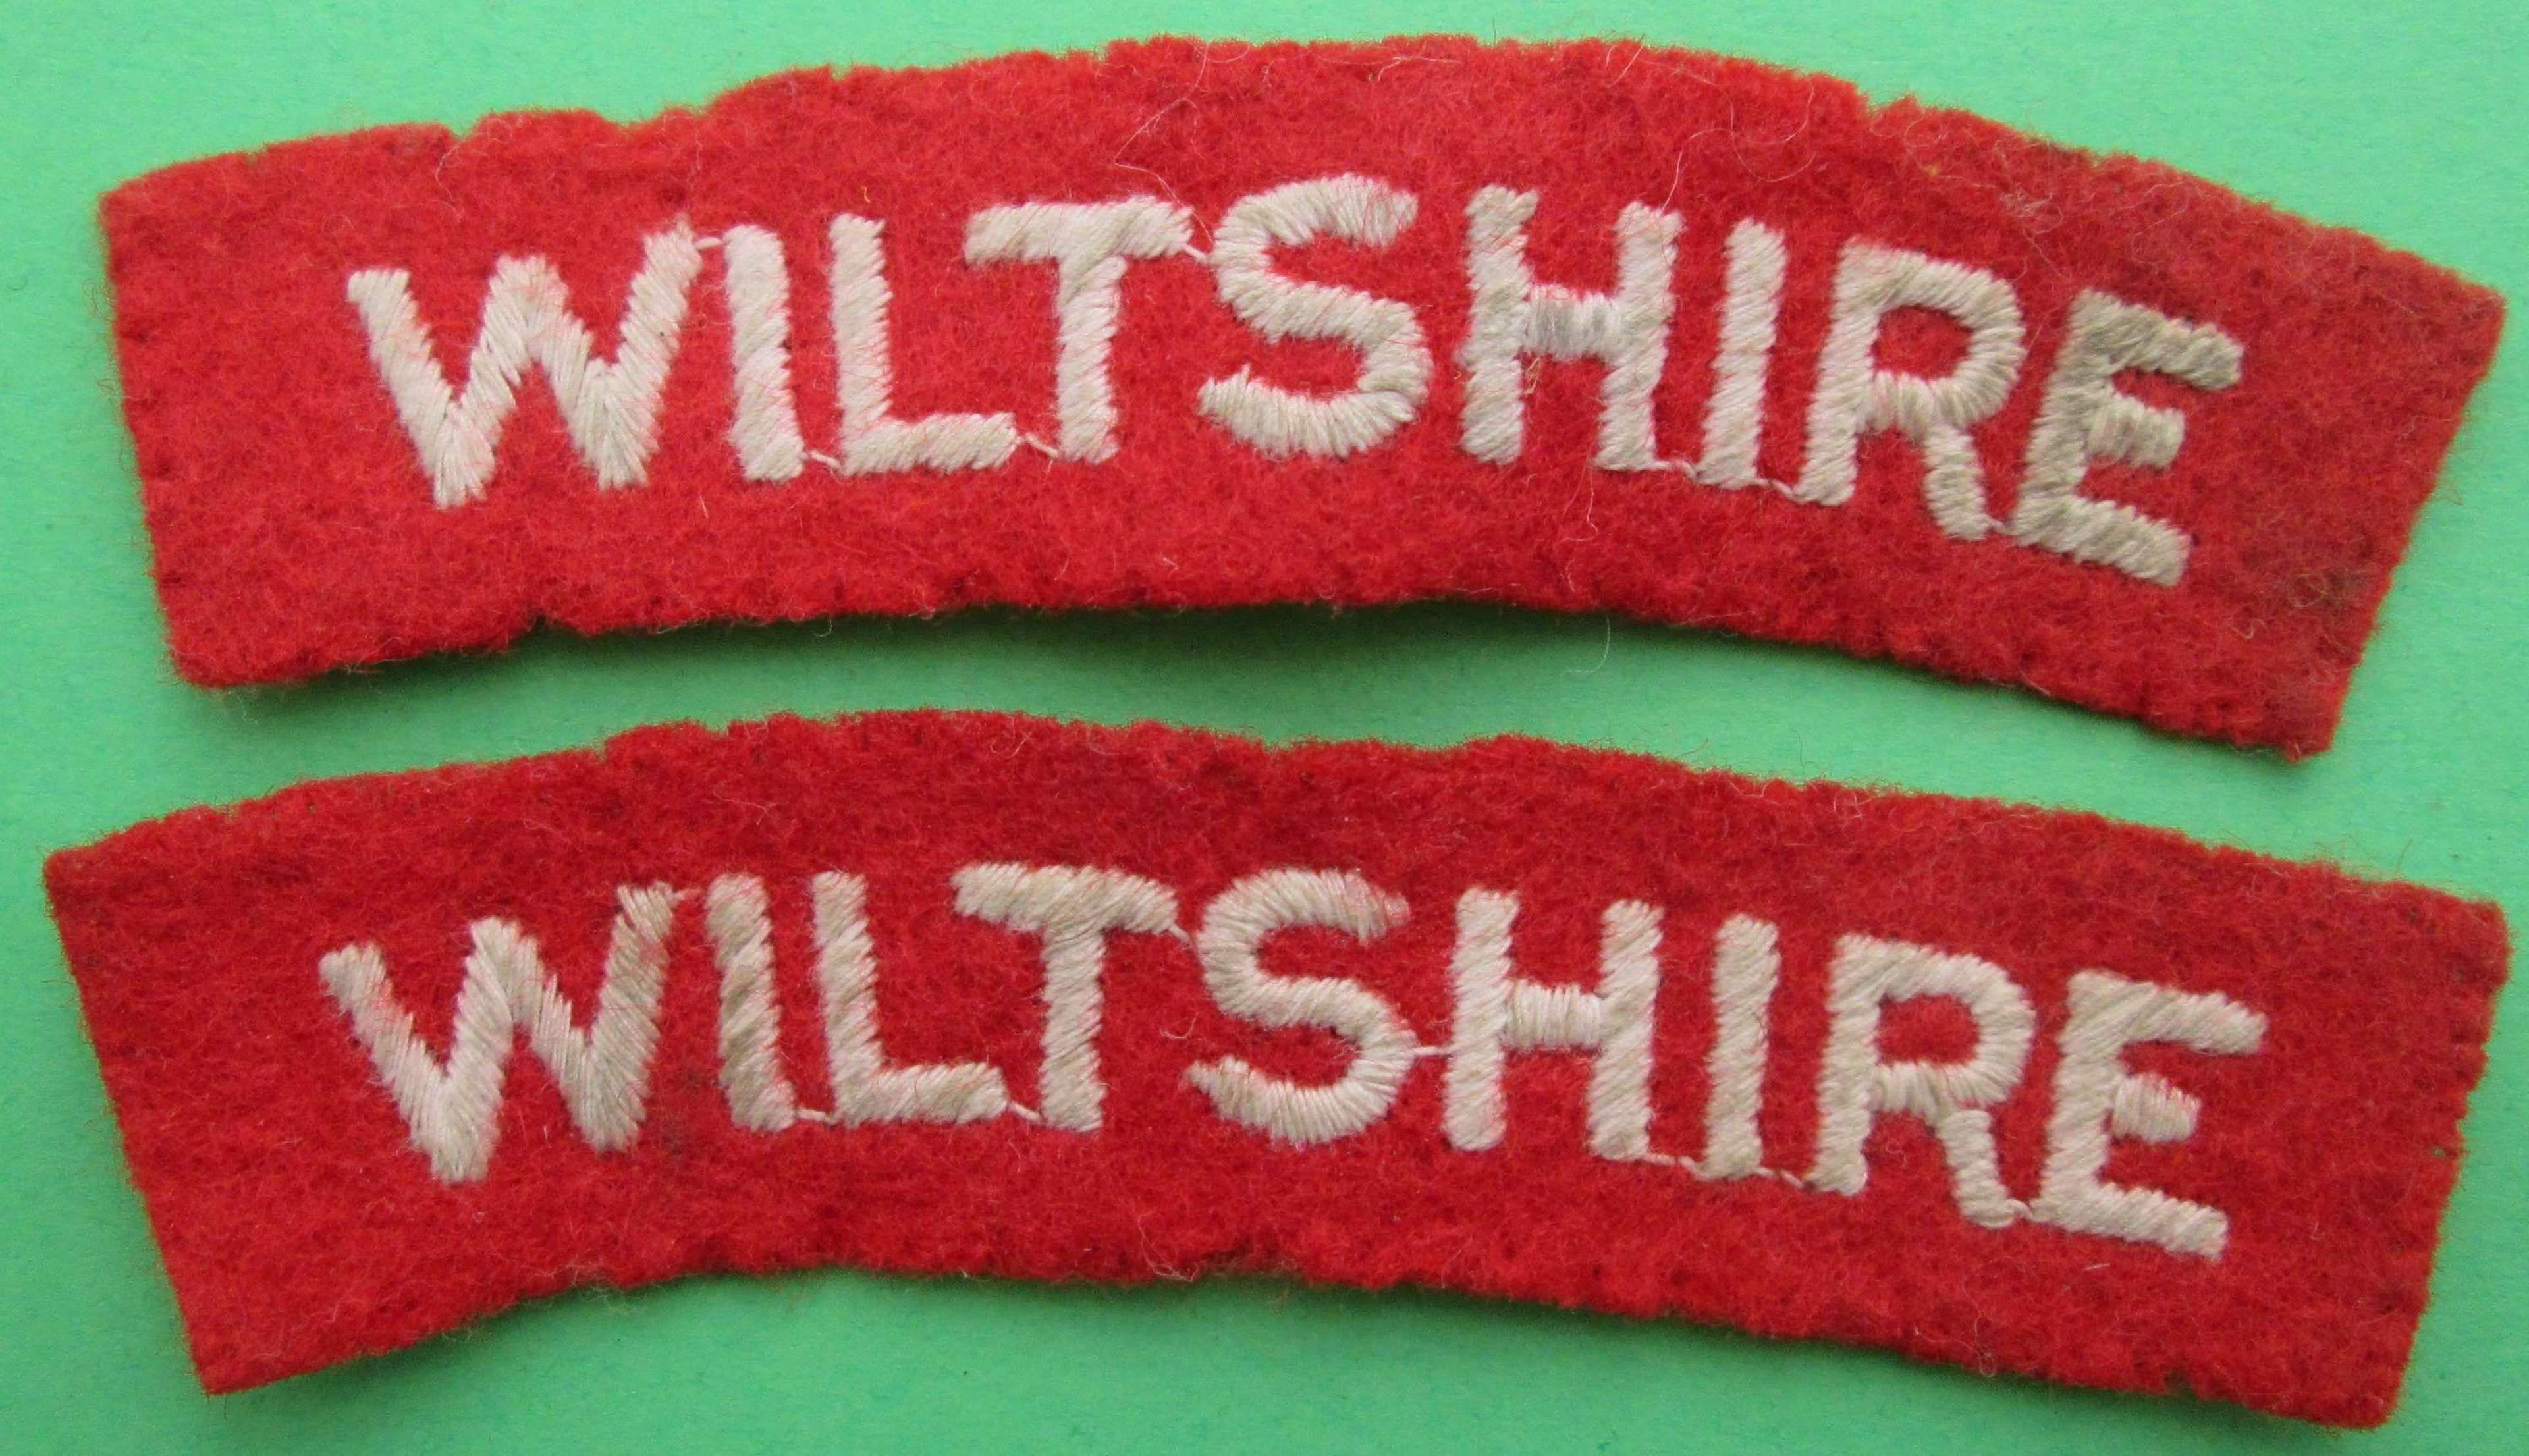 A PAIR OF WWII PERIOD WILTSHIRE SHOULDER TITLES